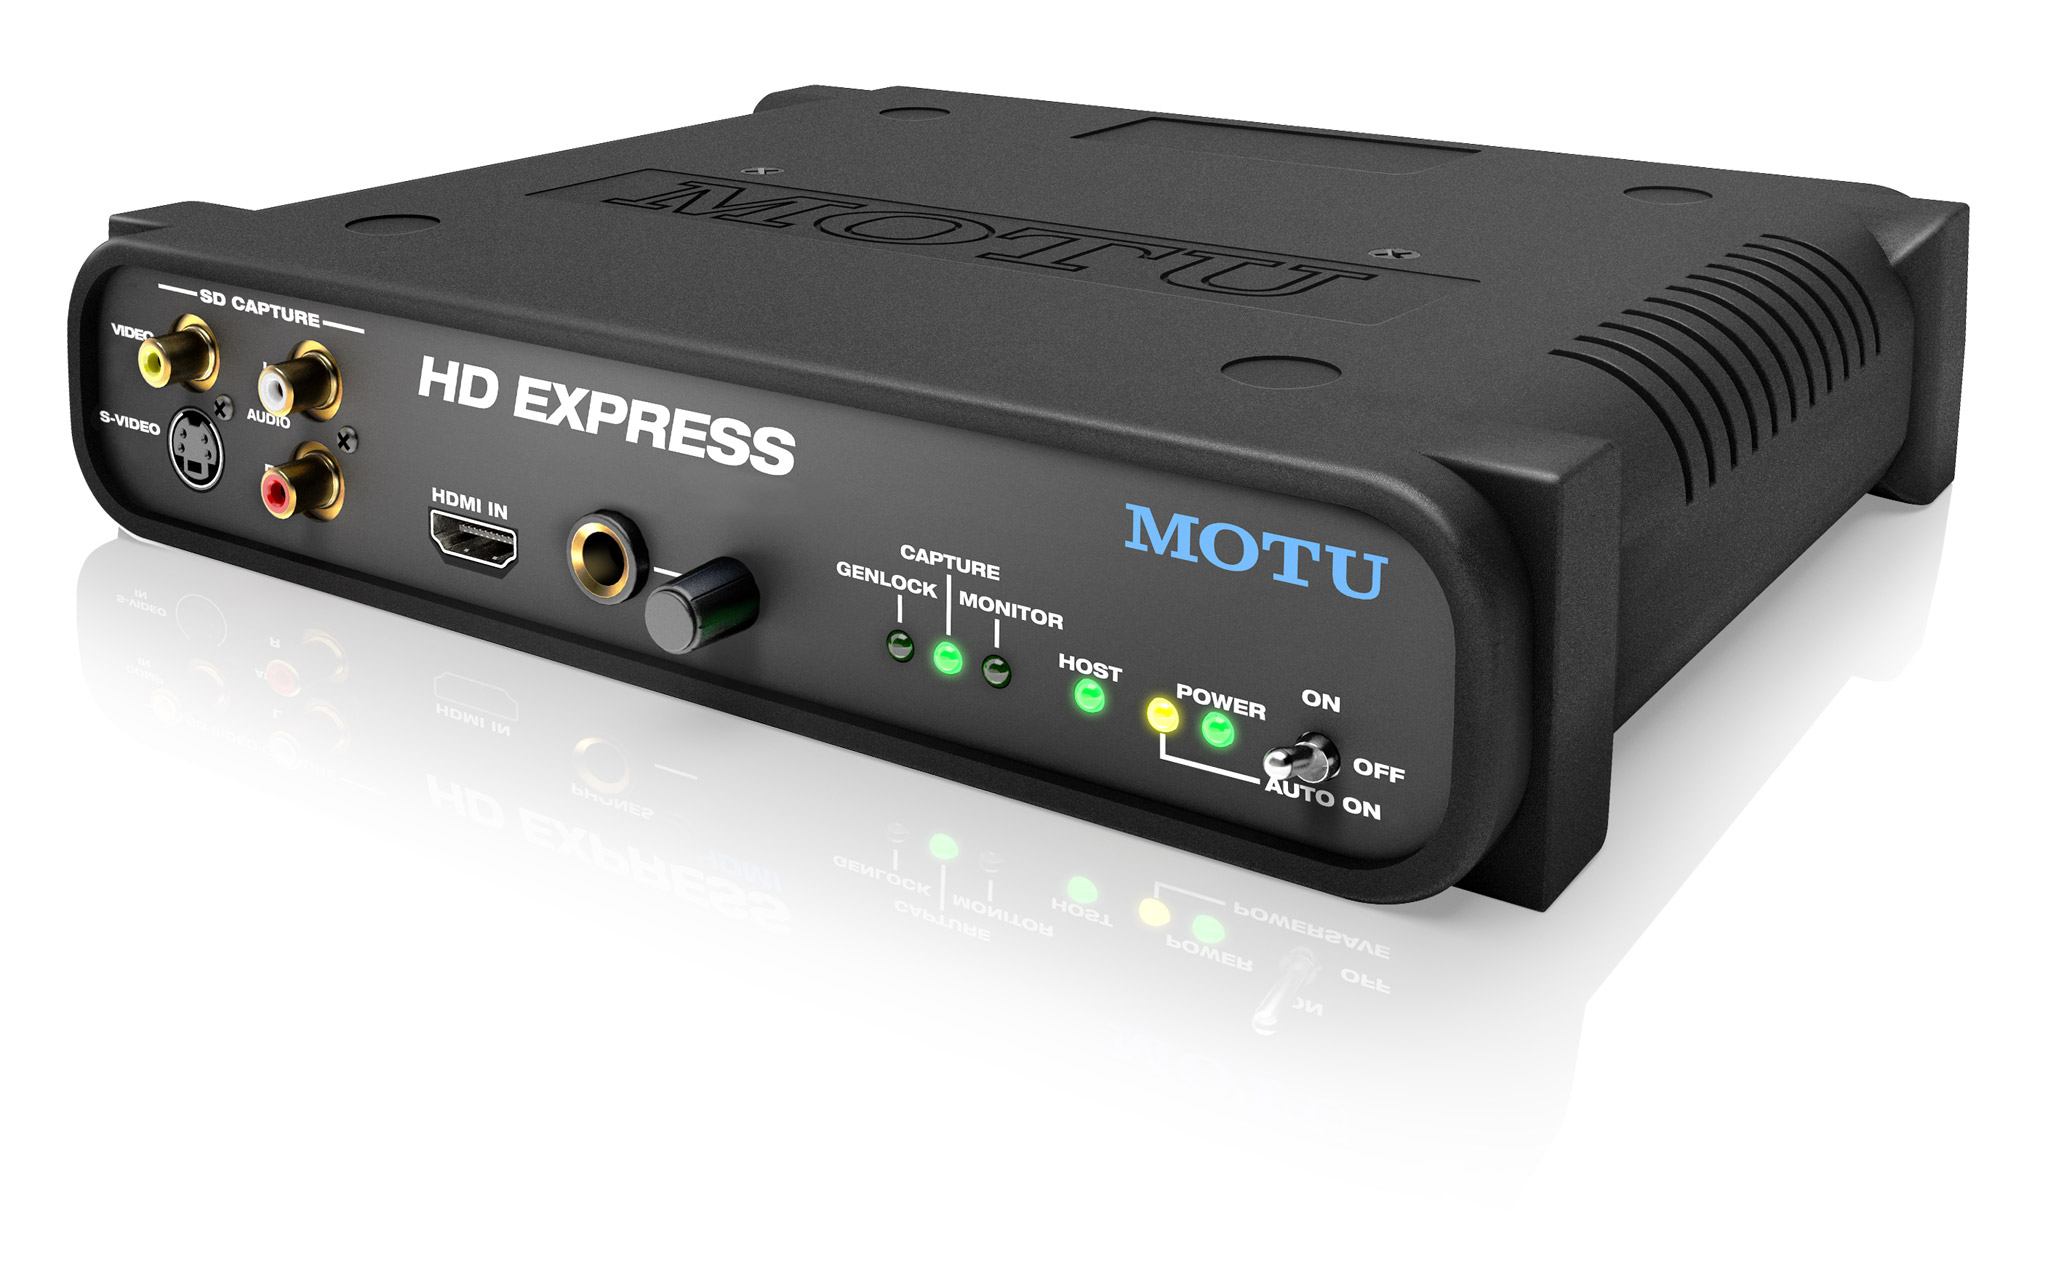 Hd Express Overview S Pdif Monitor